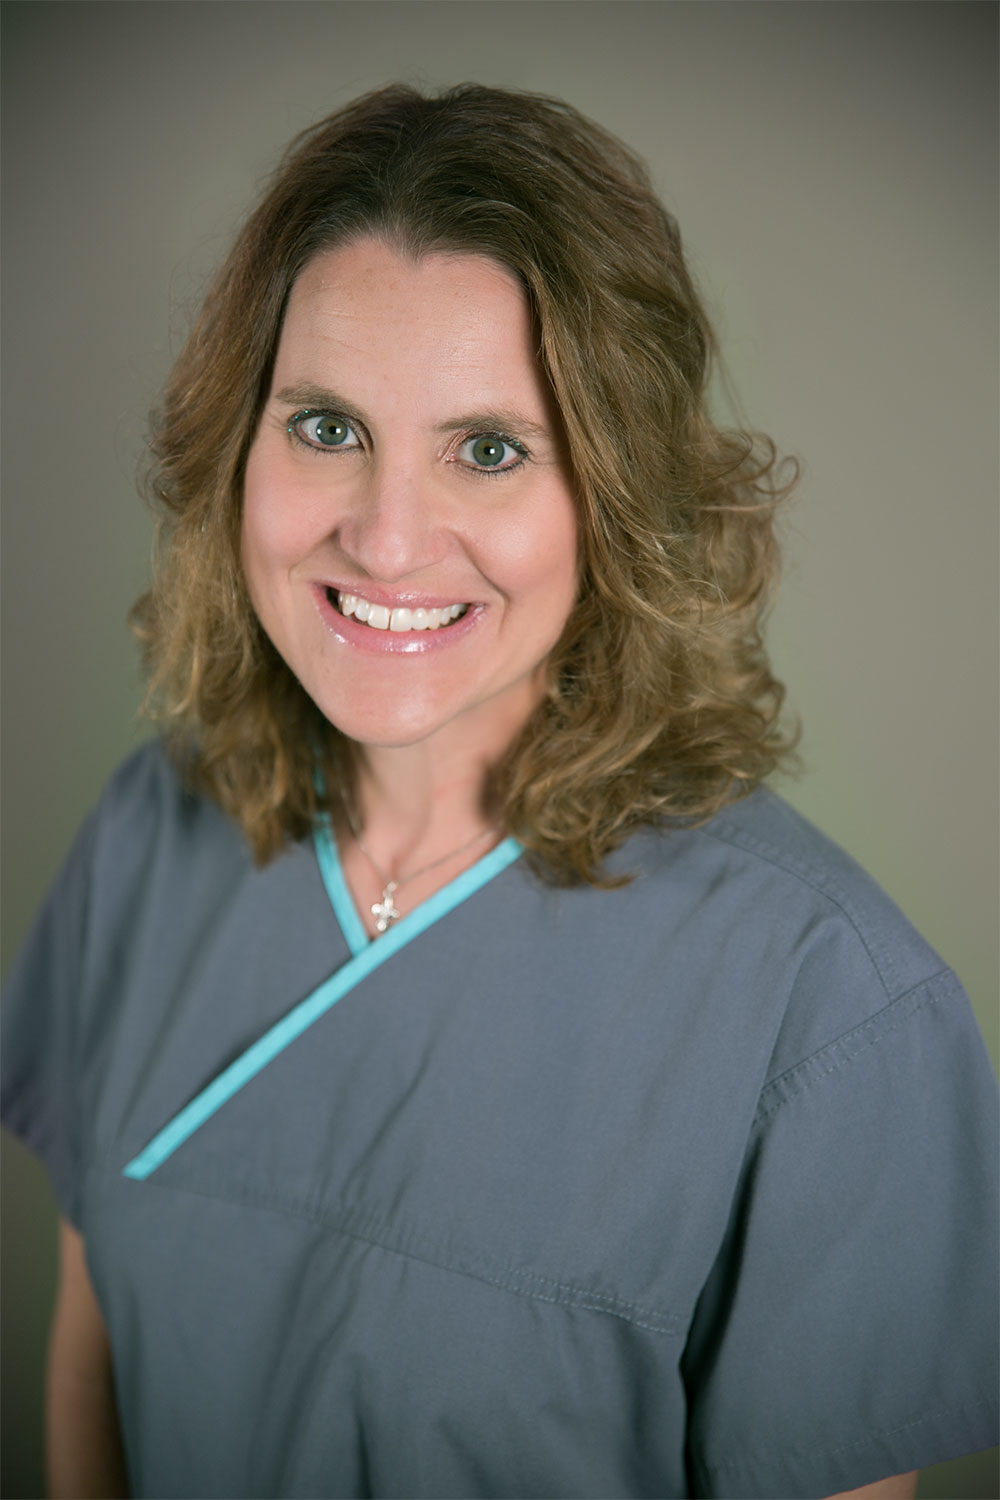 Oral Health Expert Kristen Stambaugh